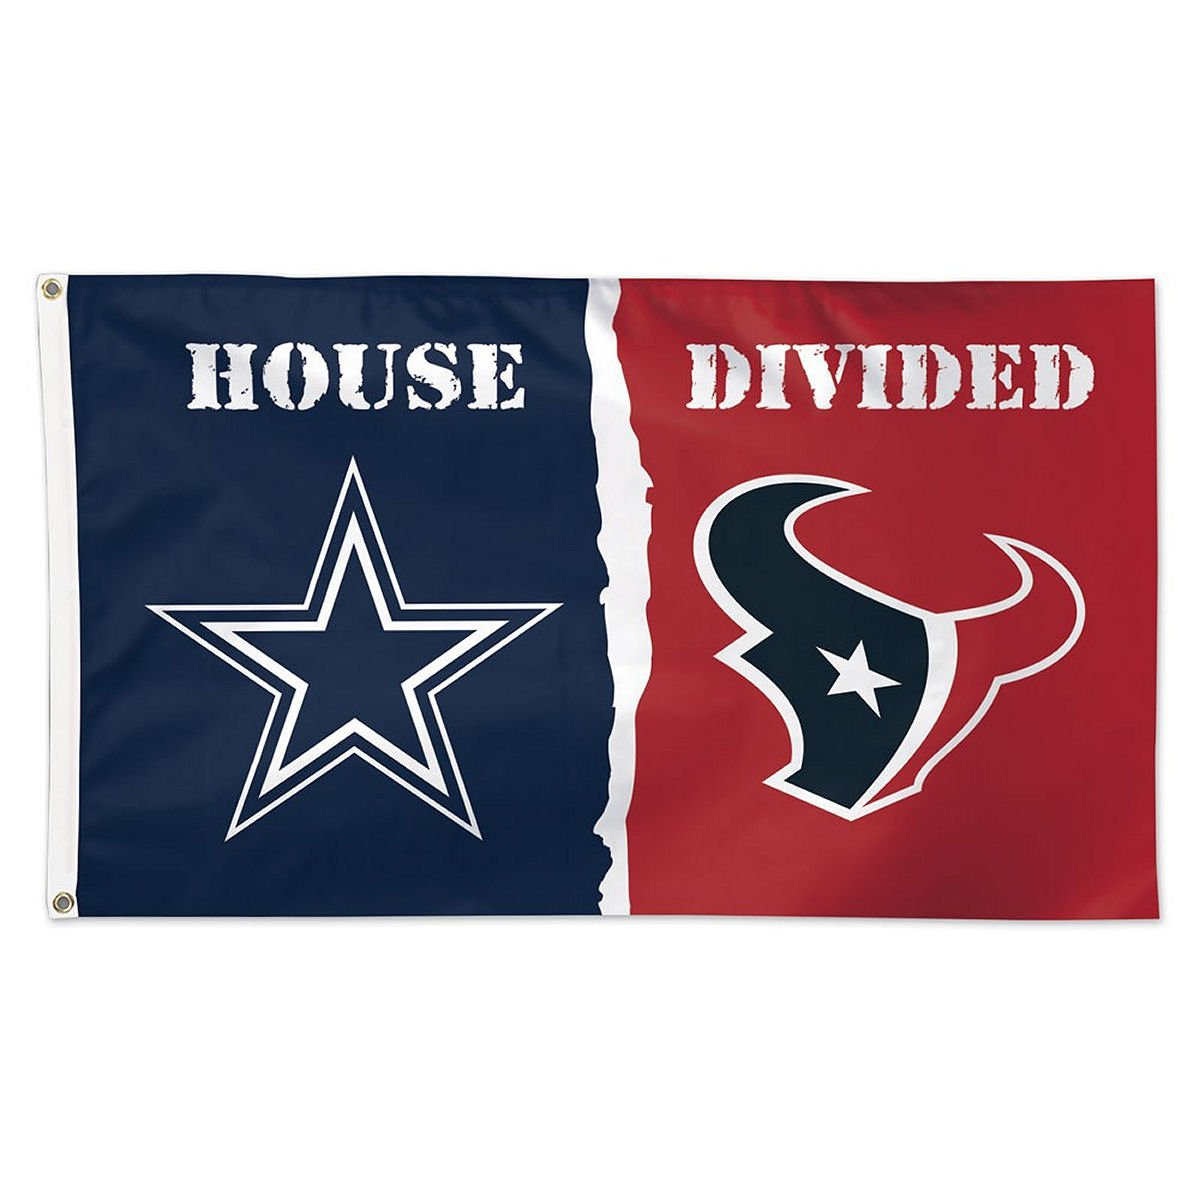 Amazon.com   NFL House Divided Flag 3x5 Dallas Cowboys vs Houston Texans  Grommets   Sports   Outdoors 8a2850a2a